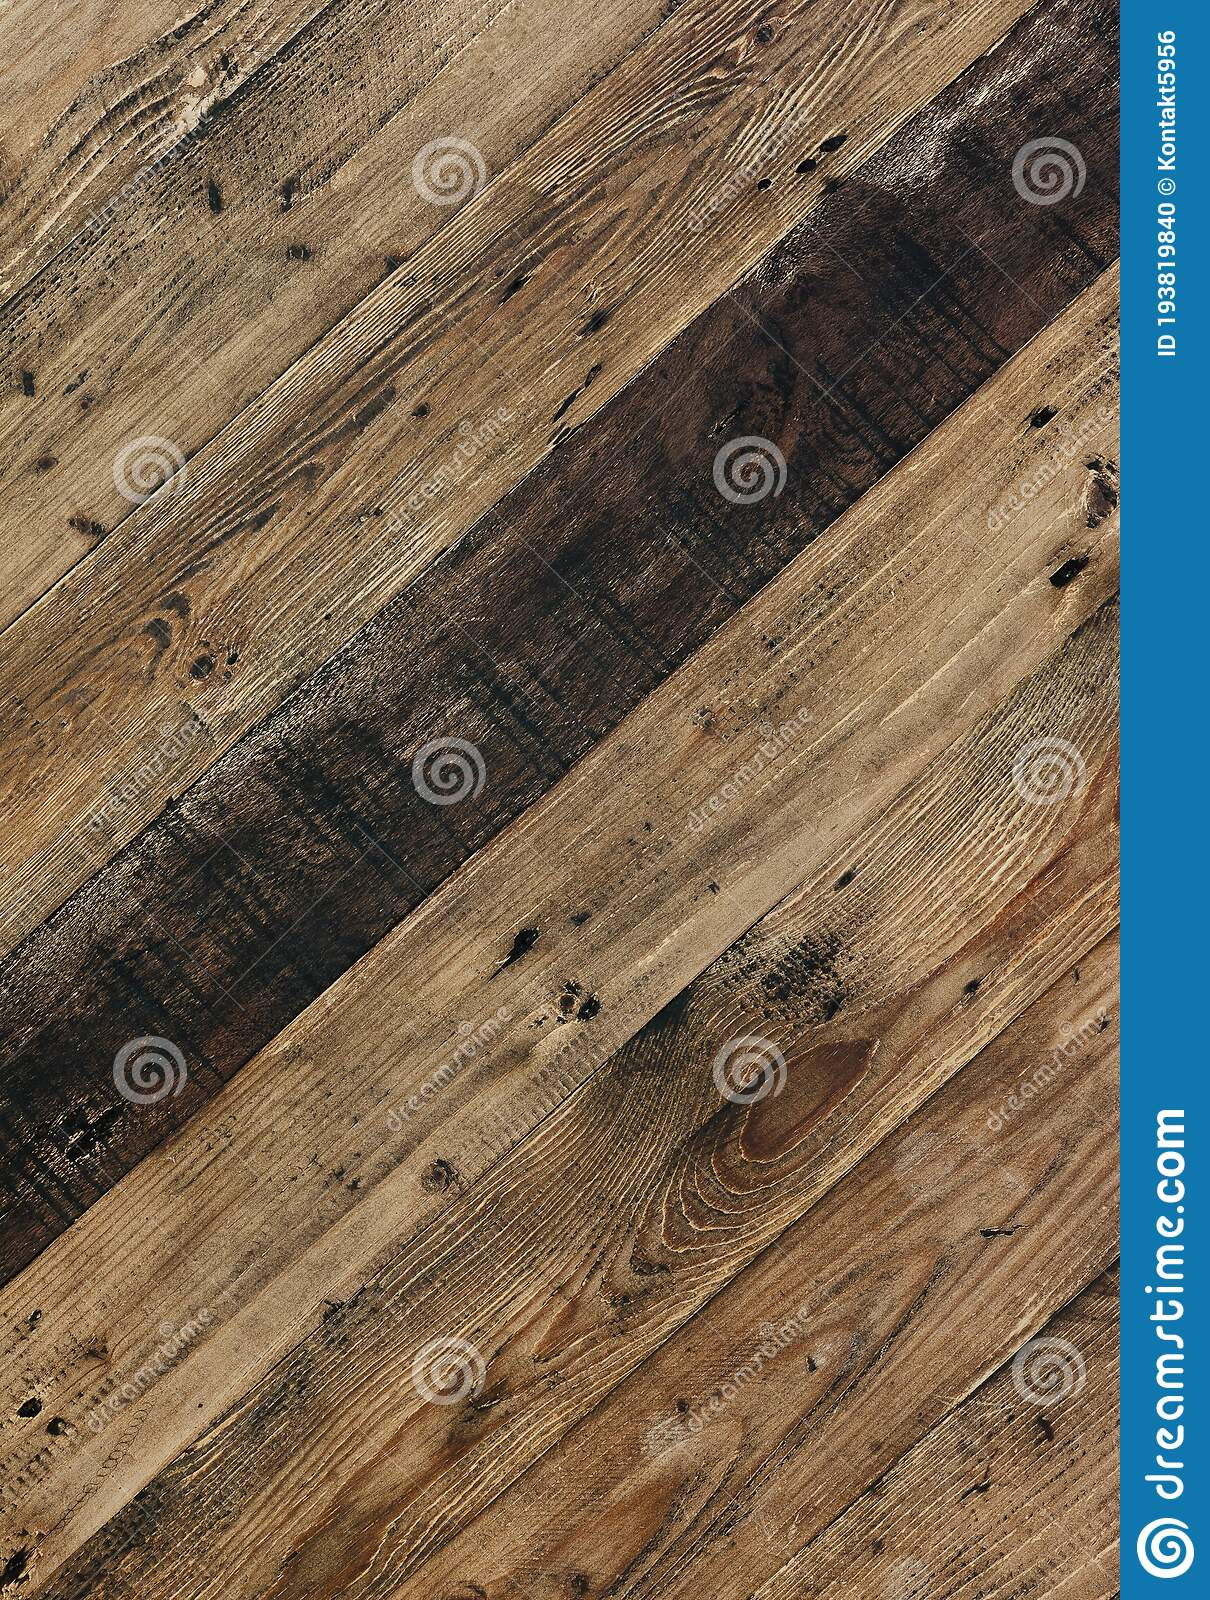 279 Driftwood Wooden Planks Photos Free Royalty Free Stock Photos From Dreamstime